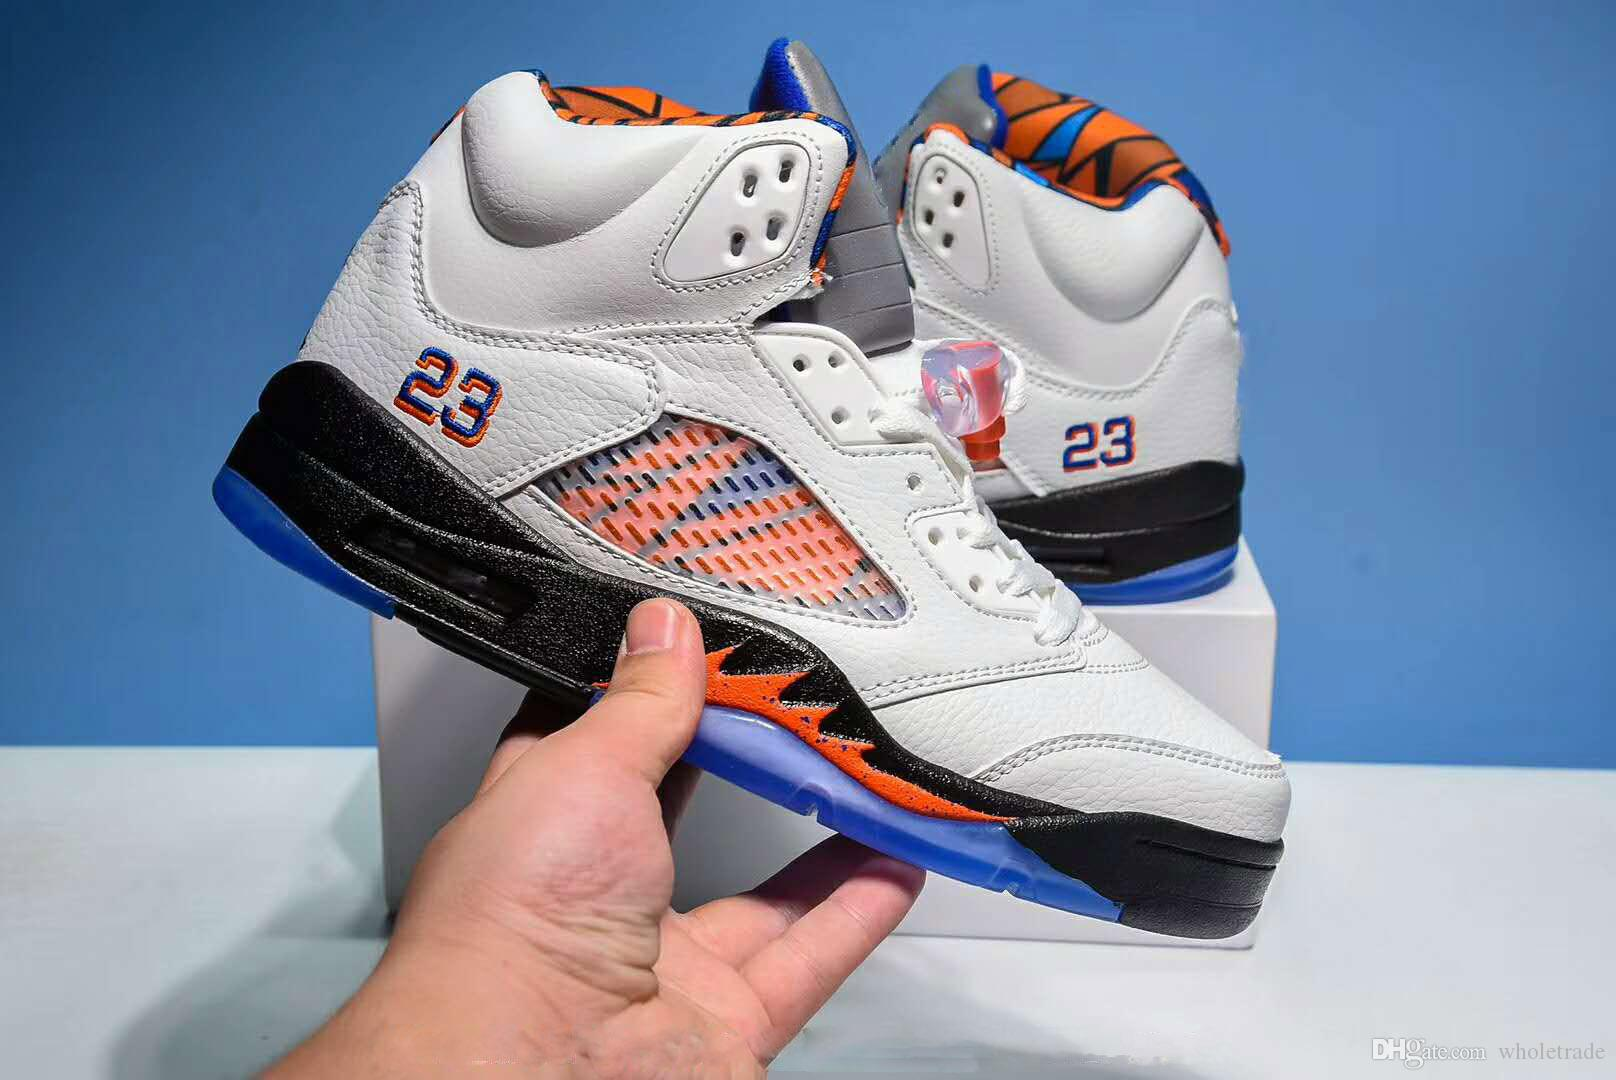 Buy basketball shoes online international shipping